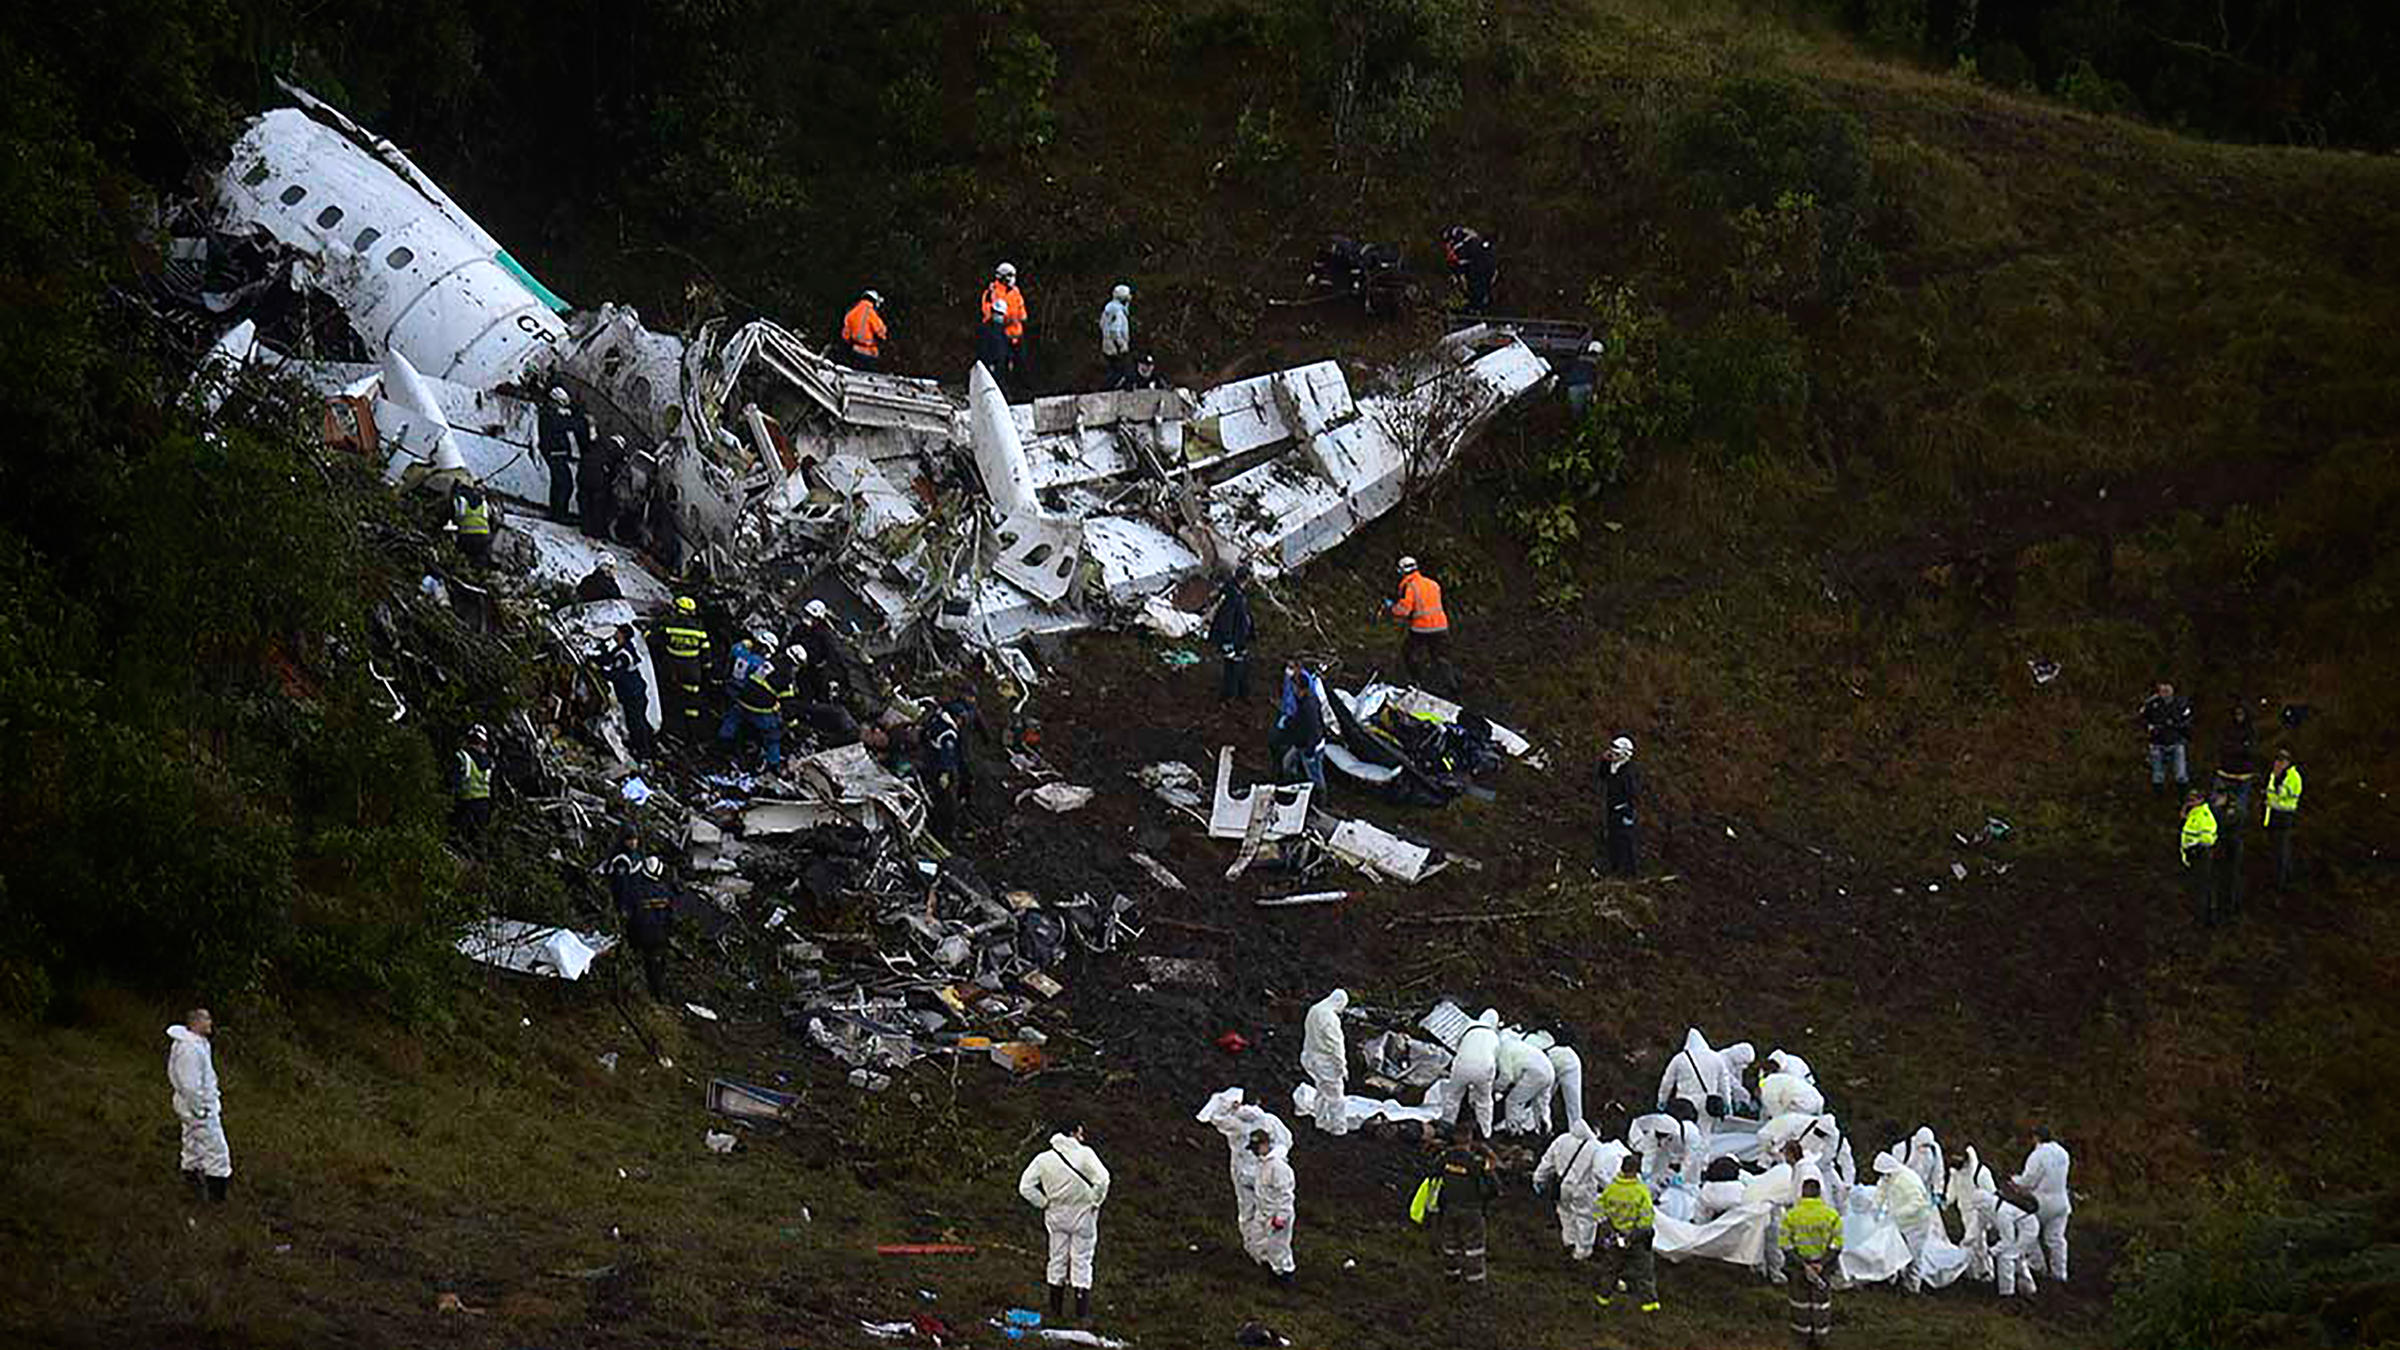 76 dead in plane crash carrying Brazilian soccer team